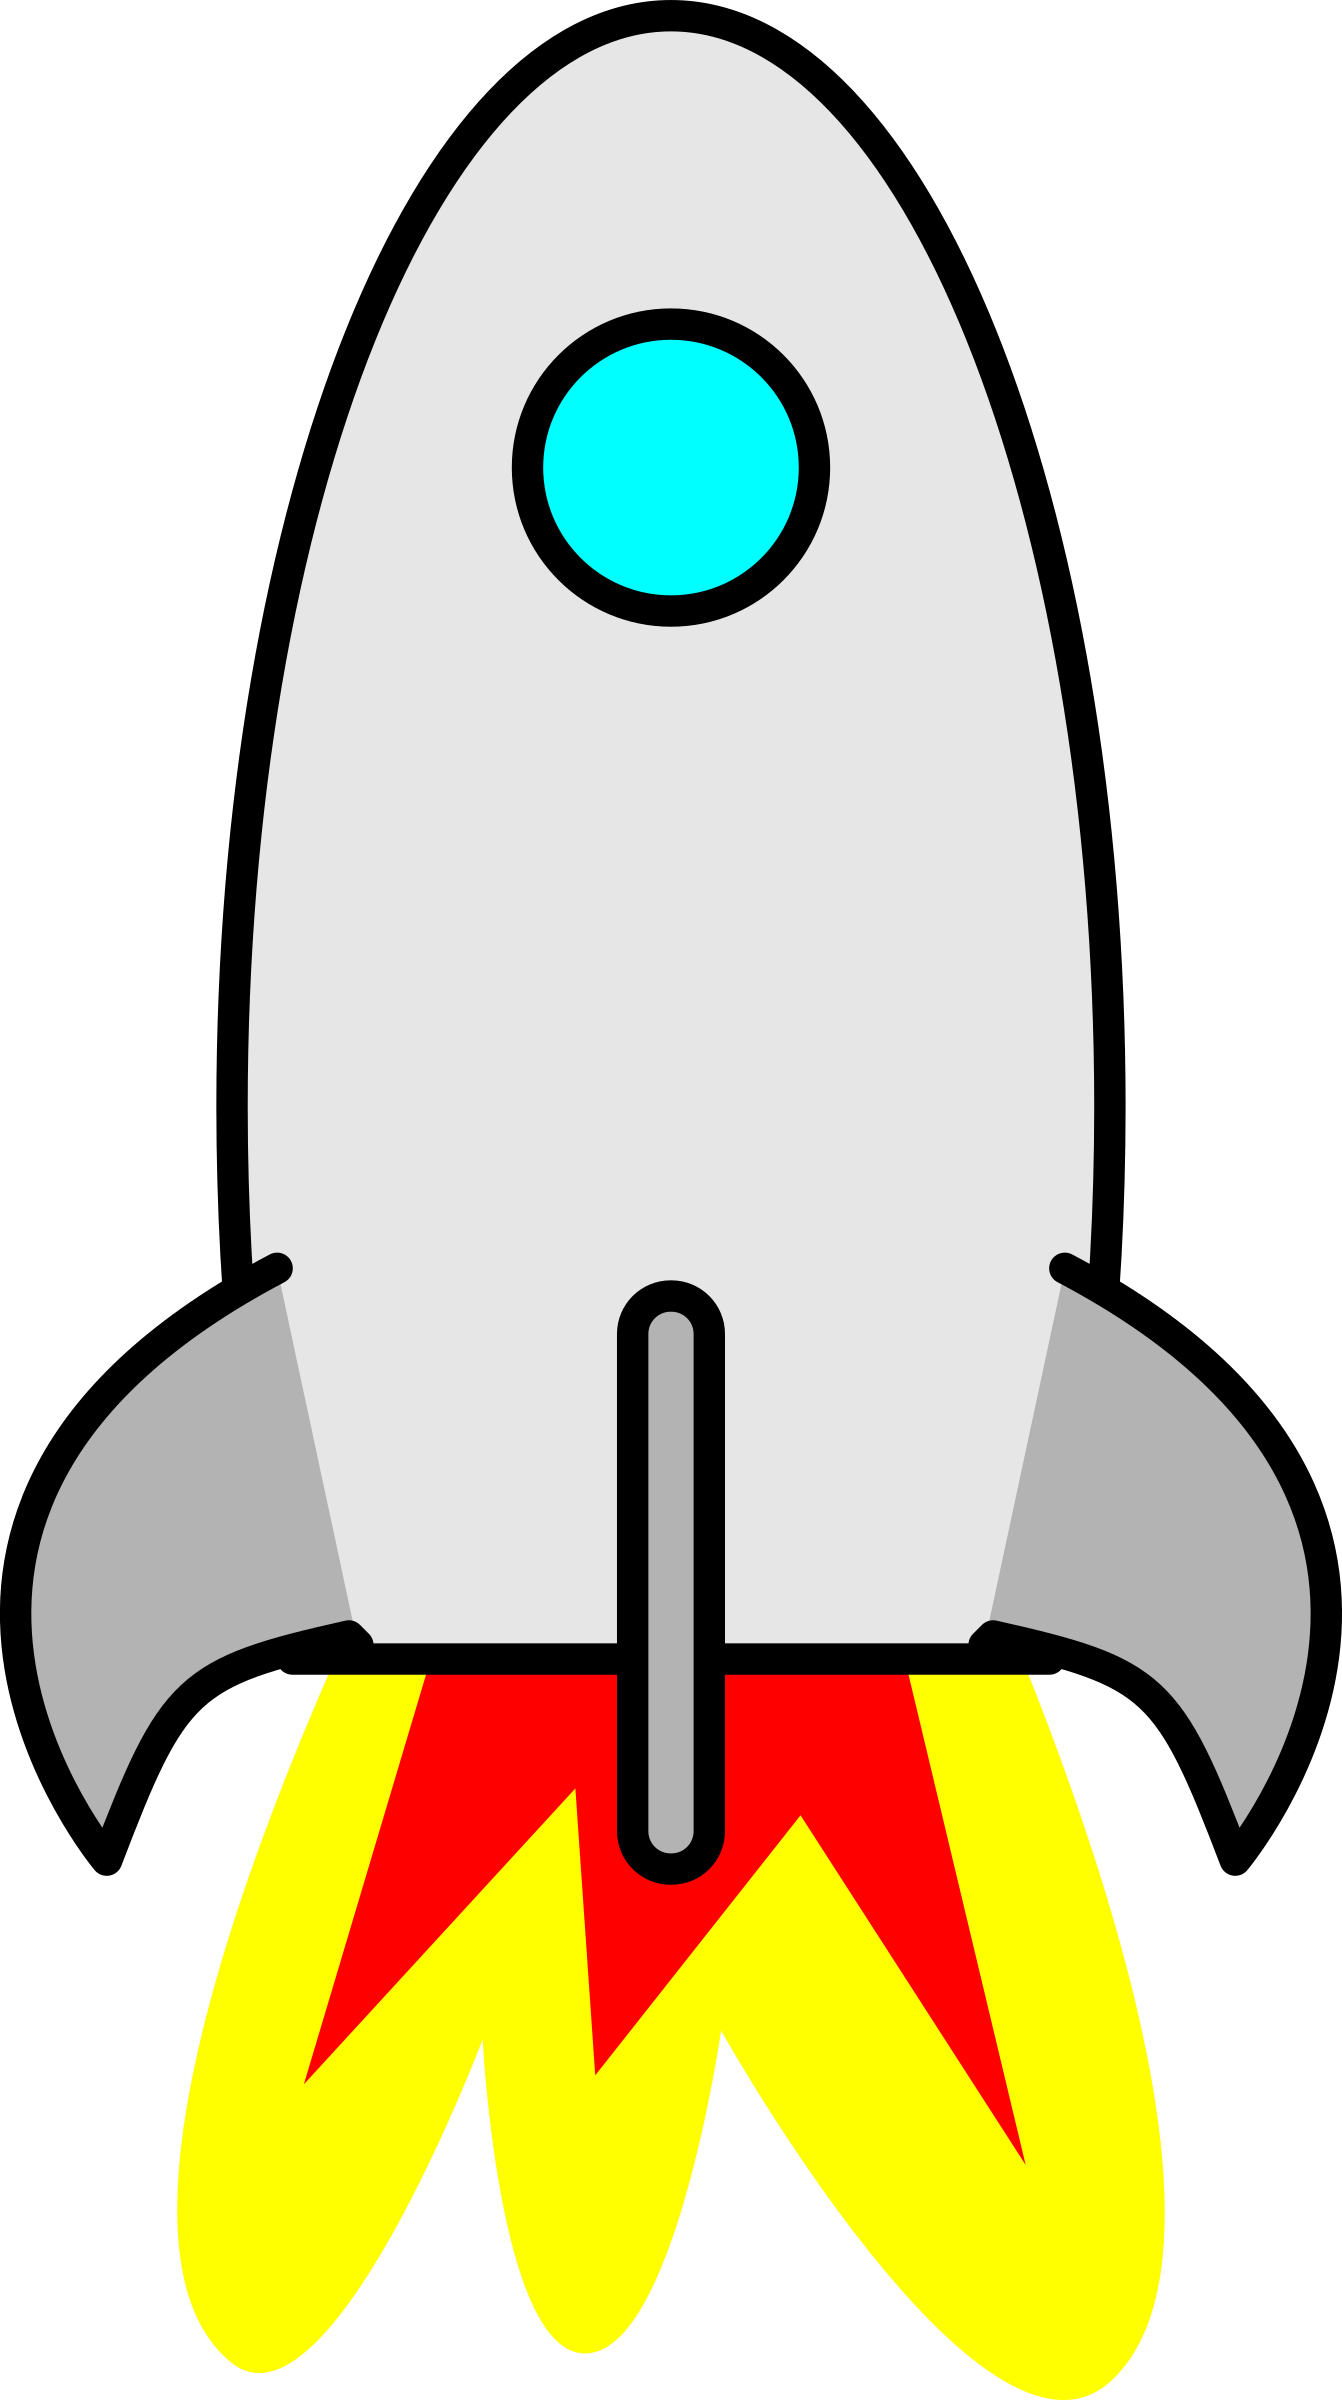 Spaceship svg transparent background. Spacecraft clipart at getdrawings